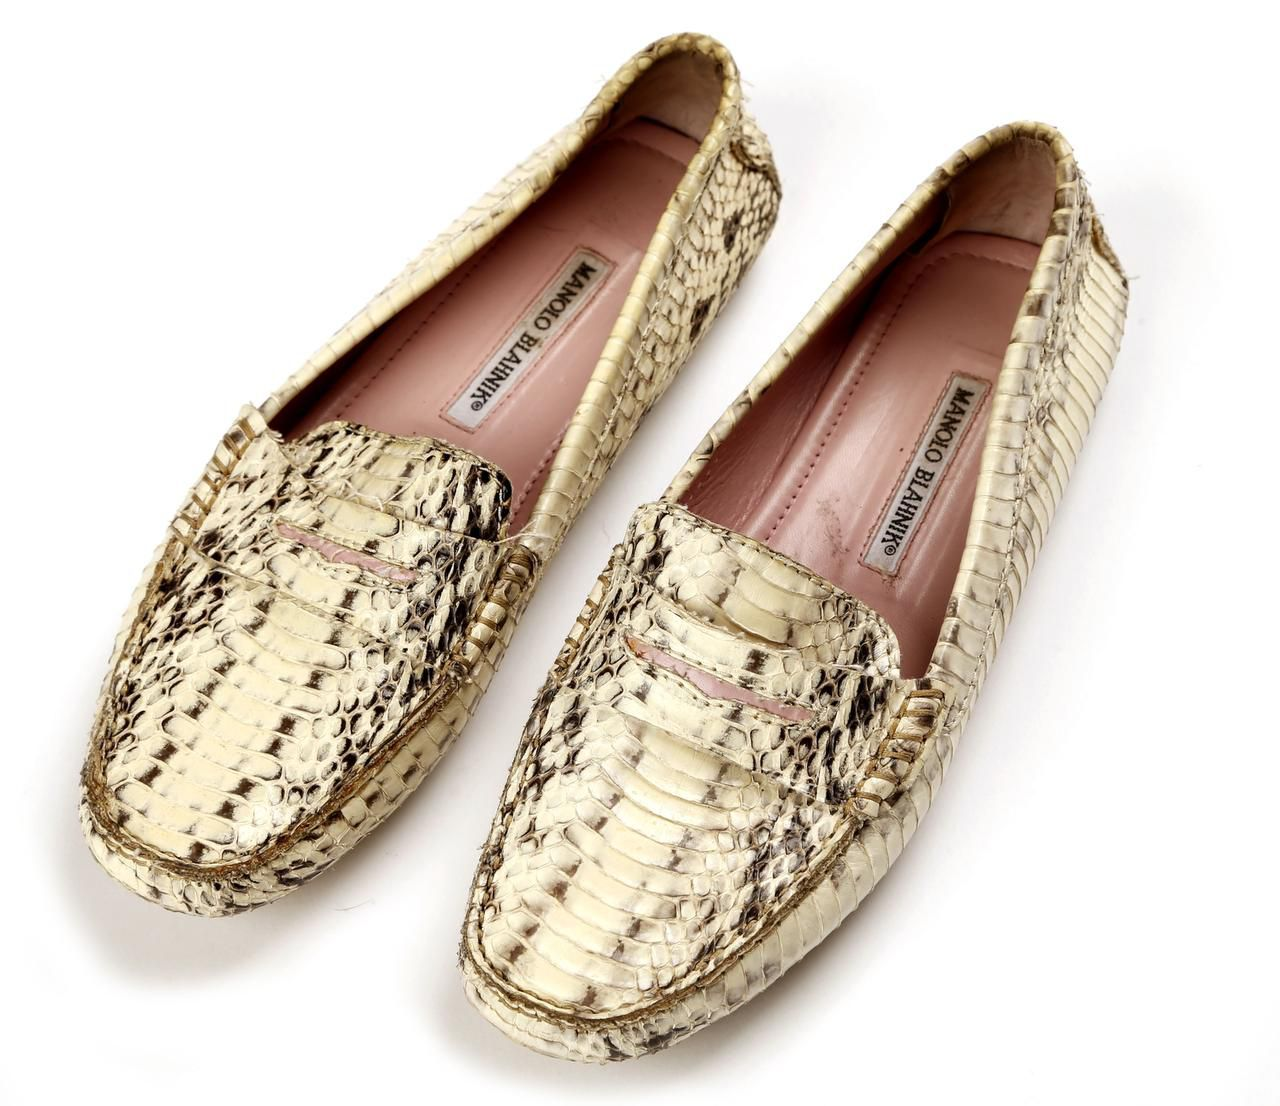 Subtle style: Joelle's Manolo Blahnik snakeskin drivers are the perfect example of how simple can be anything but boring. Make a style statement with subtlety.